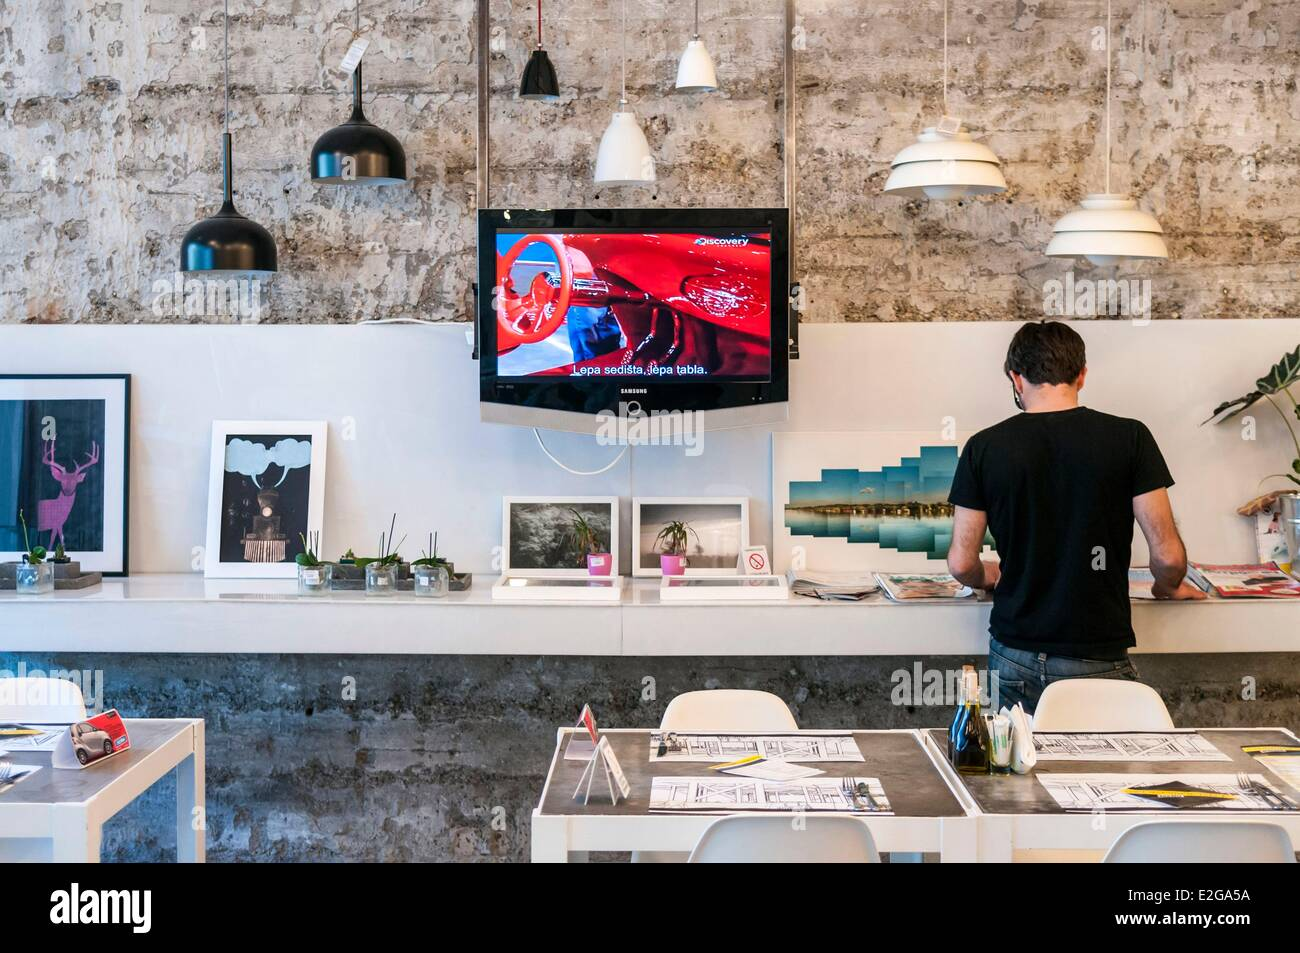 Serbia Belgrade downtown Supermarket concept store and restaurant - Stock Image